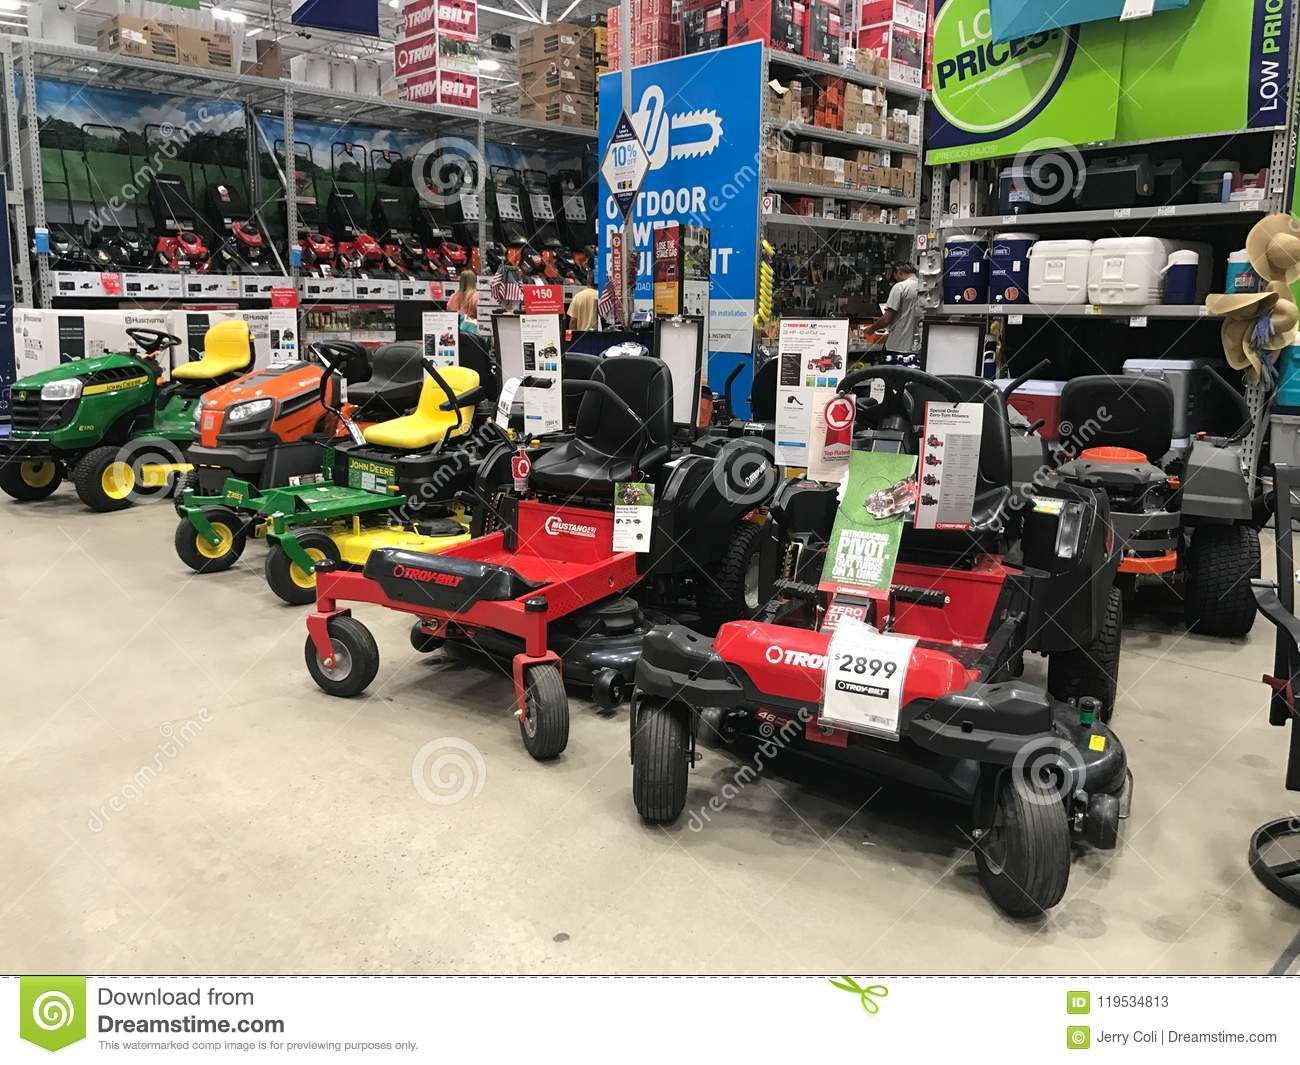 Lawn Tractors Inside A Lowe S Hardware Store Editorial Stock Photo Image Of Chain Hardware 119534813